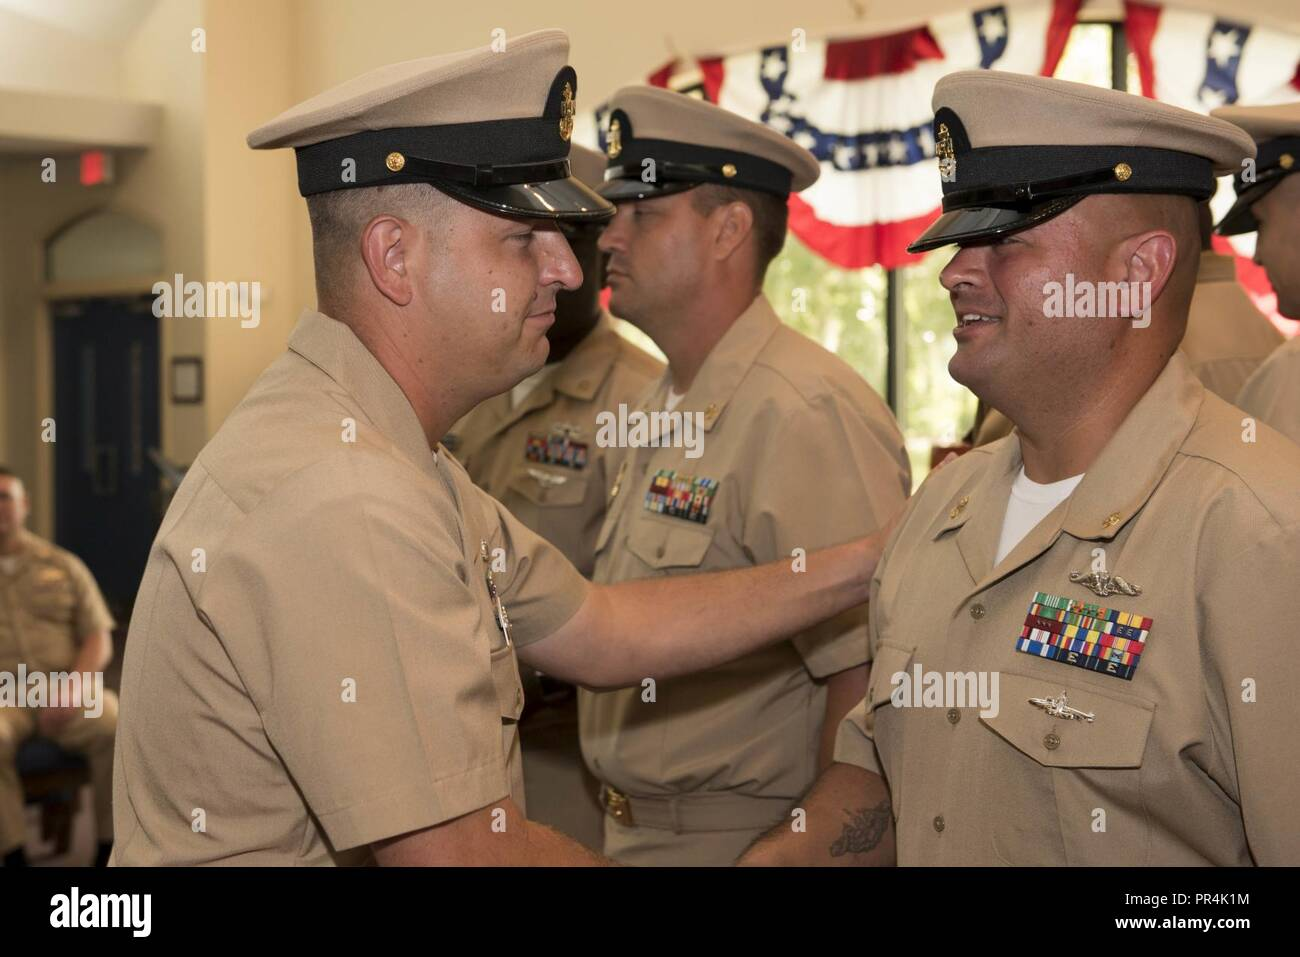 KINGS BAY, Georgia (Sept. 14, 2018) Chief Culinary Specialist (Submarines) John Nordman is congratulated by his sponsor during Naval Submarine Base Kings Bay's 2018 chief petty officer pinning ceremony.  The base is home to six of the Ohio-class ballistic-missile submarines that make up the most survivable leg of the nuclear missile triad. - Stock Image